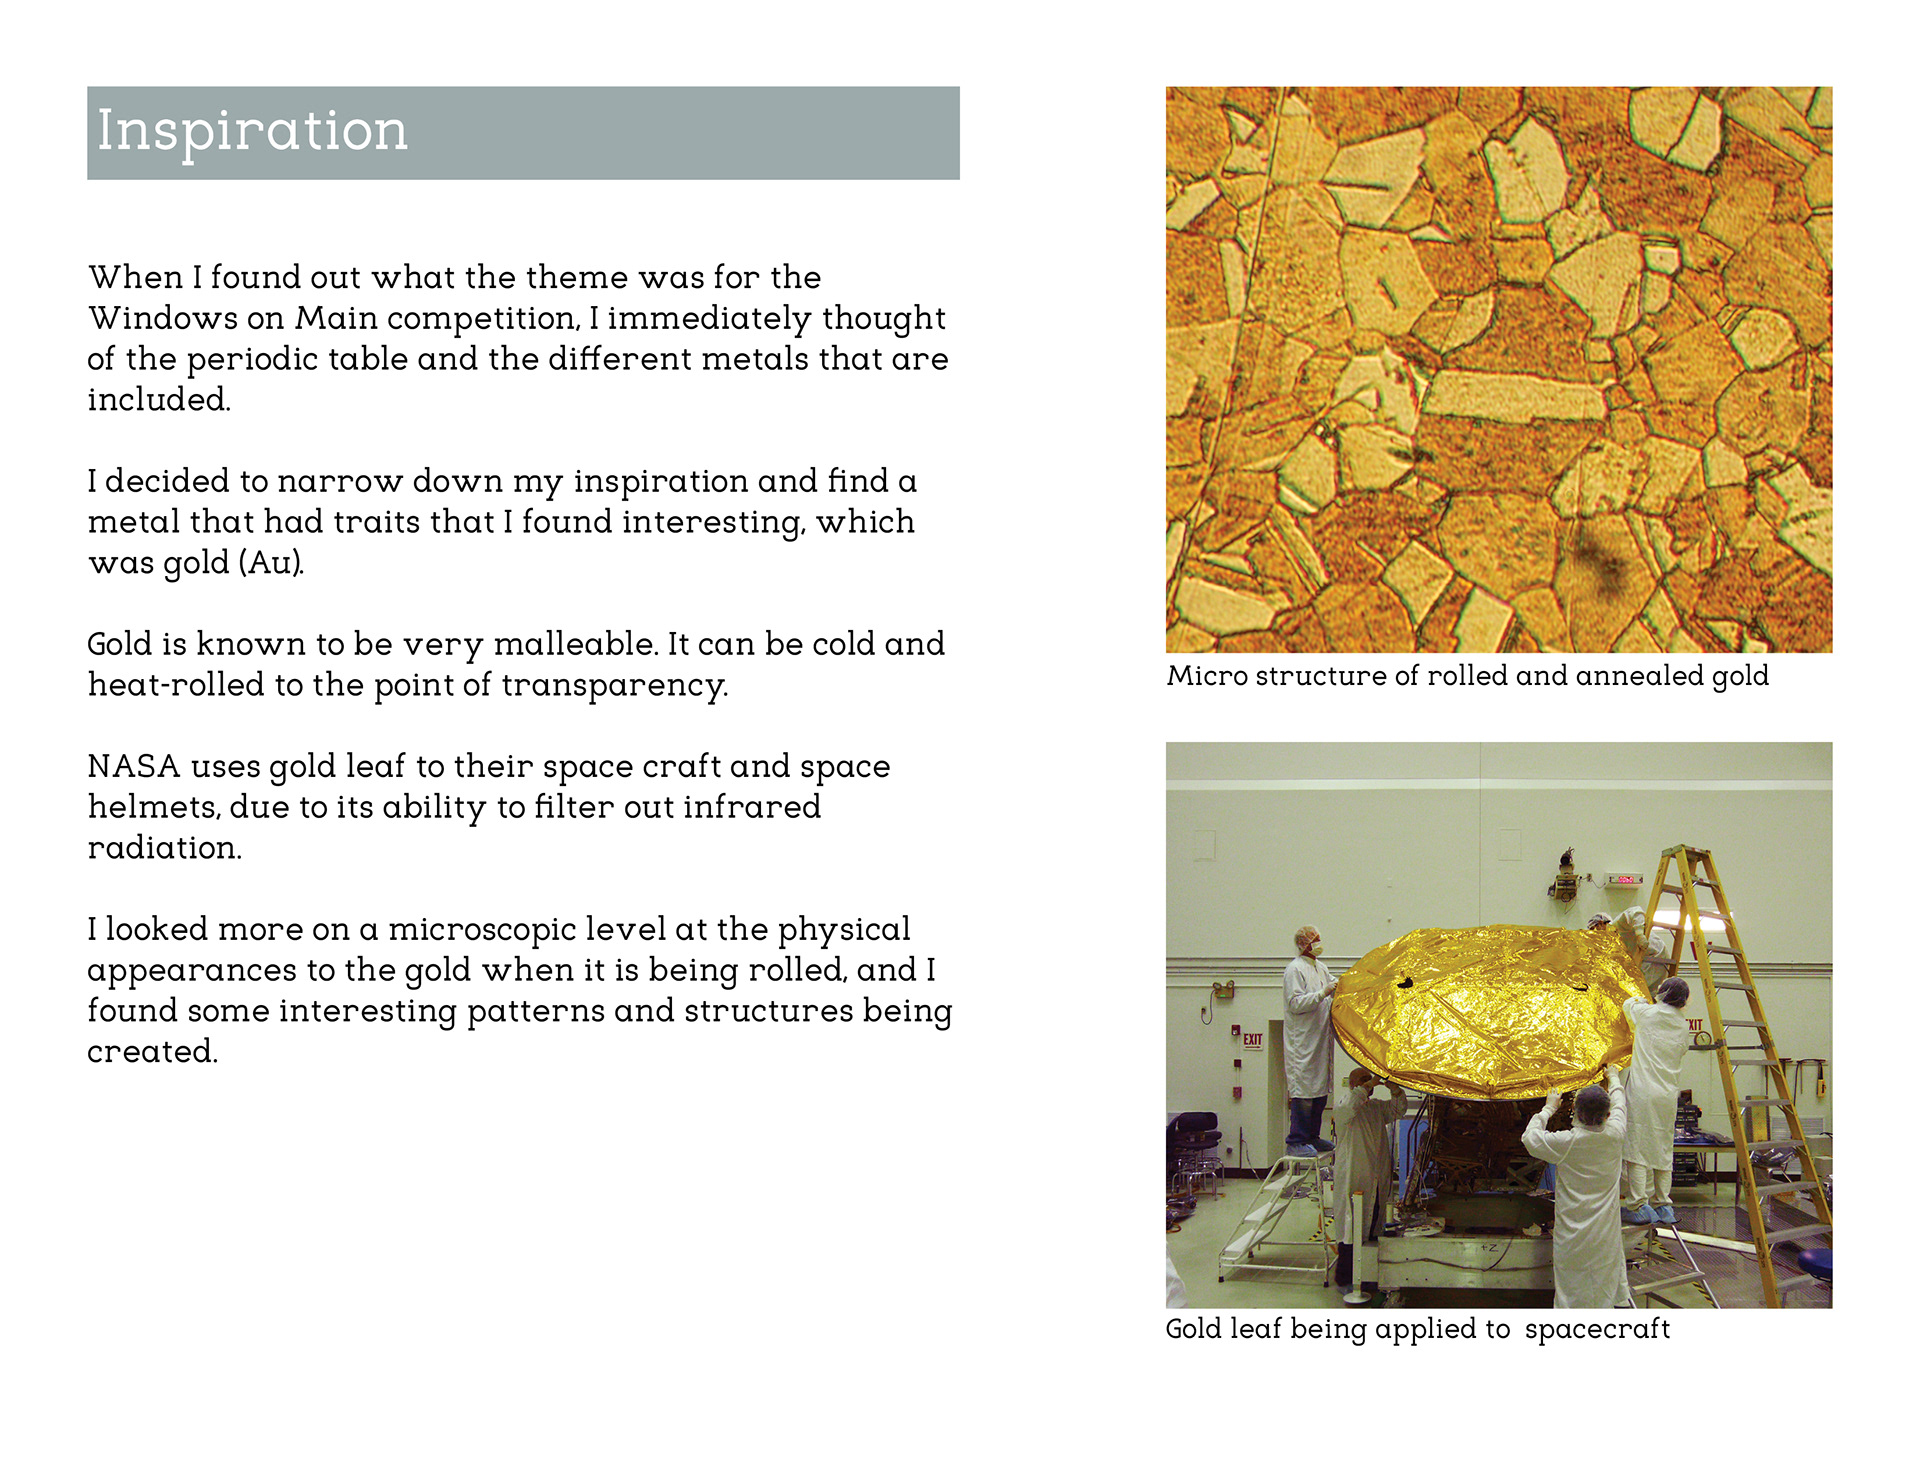 3d window installation representing the change in crystal structures during the annealing process of gold